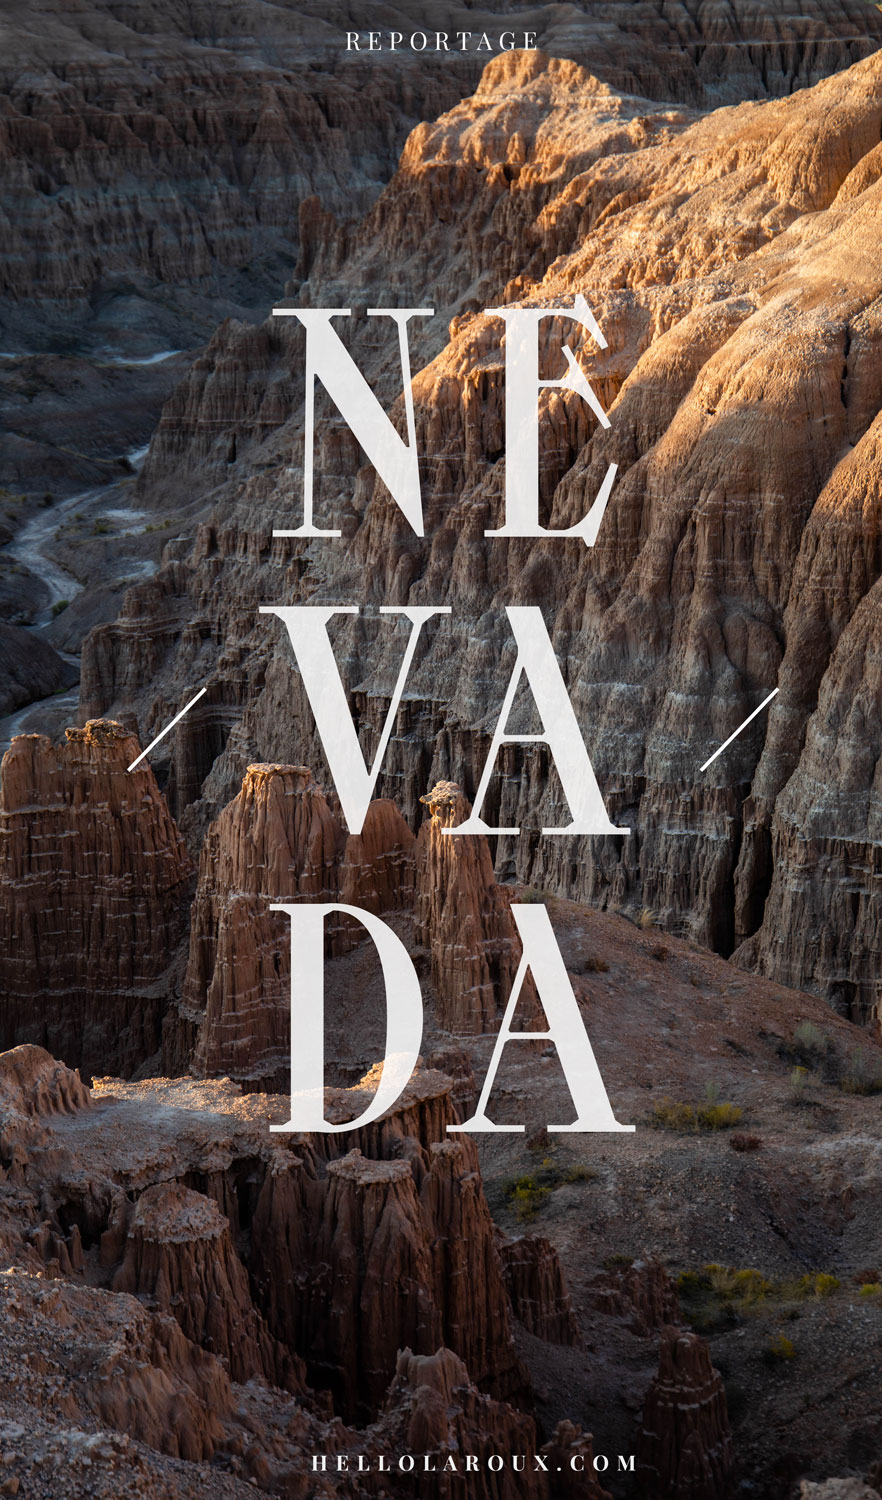 reportage-nevada-ouest-americain-authentique